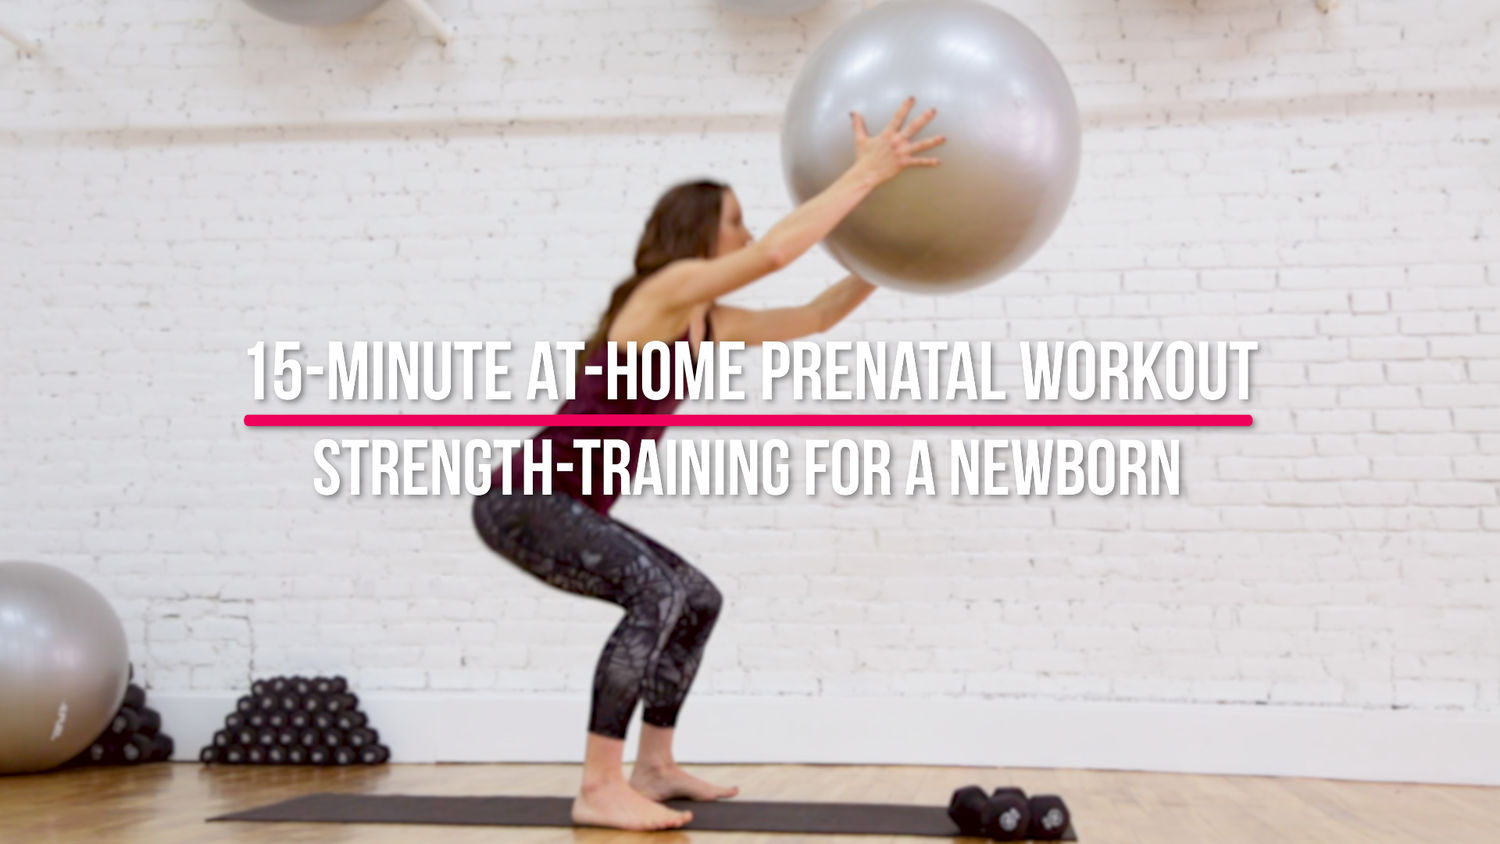 15-Minute At-Home Prenatal Workout